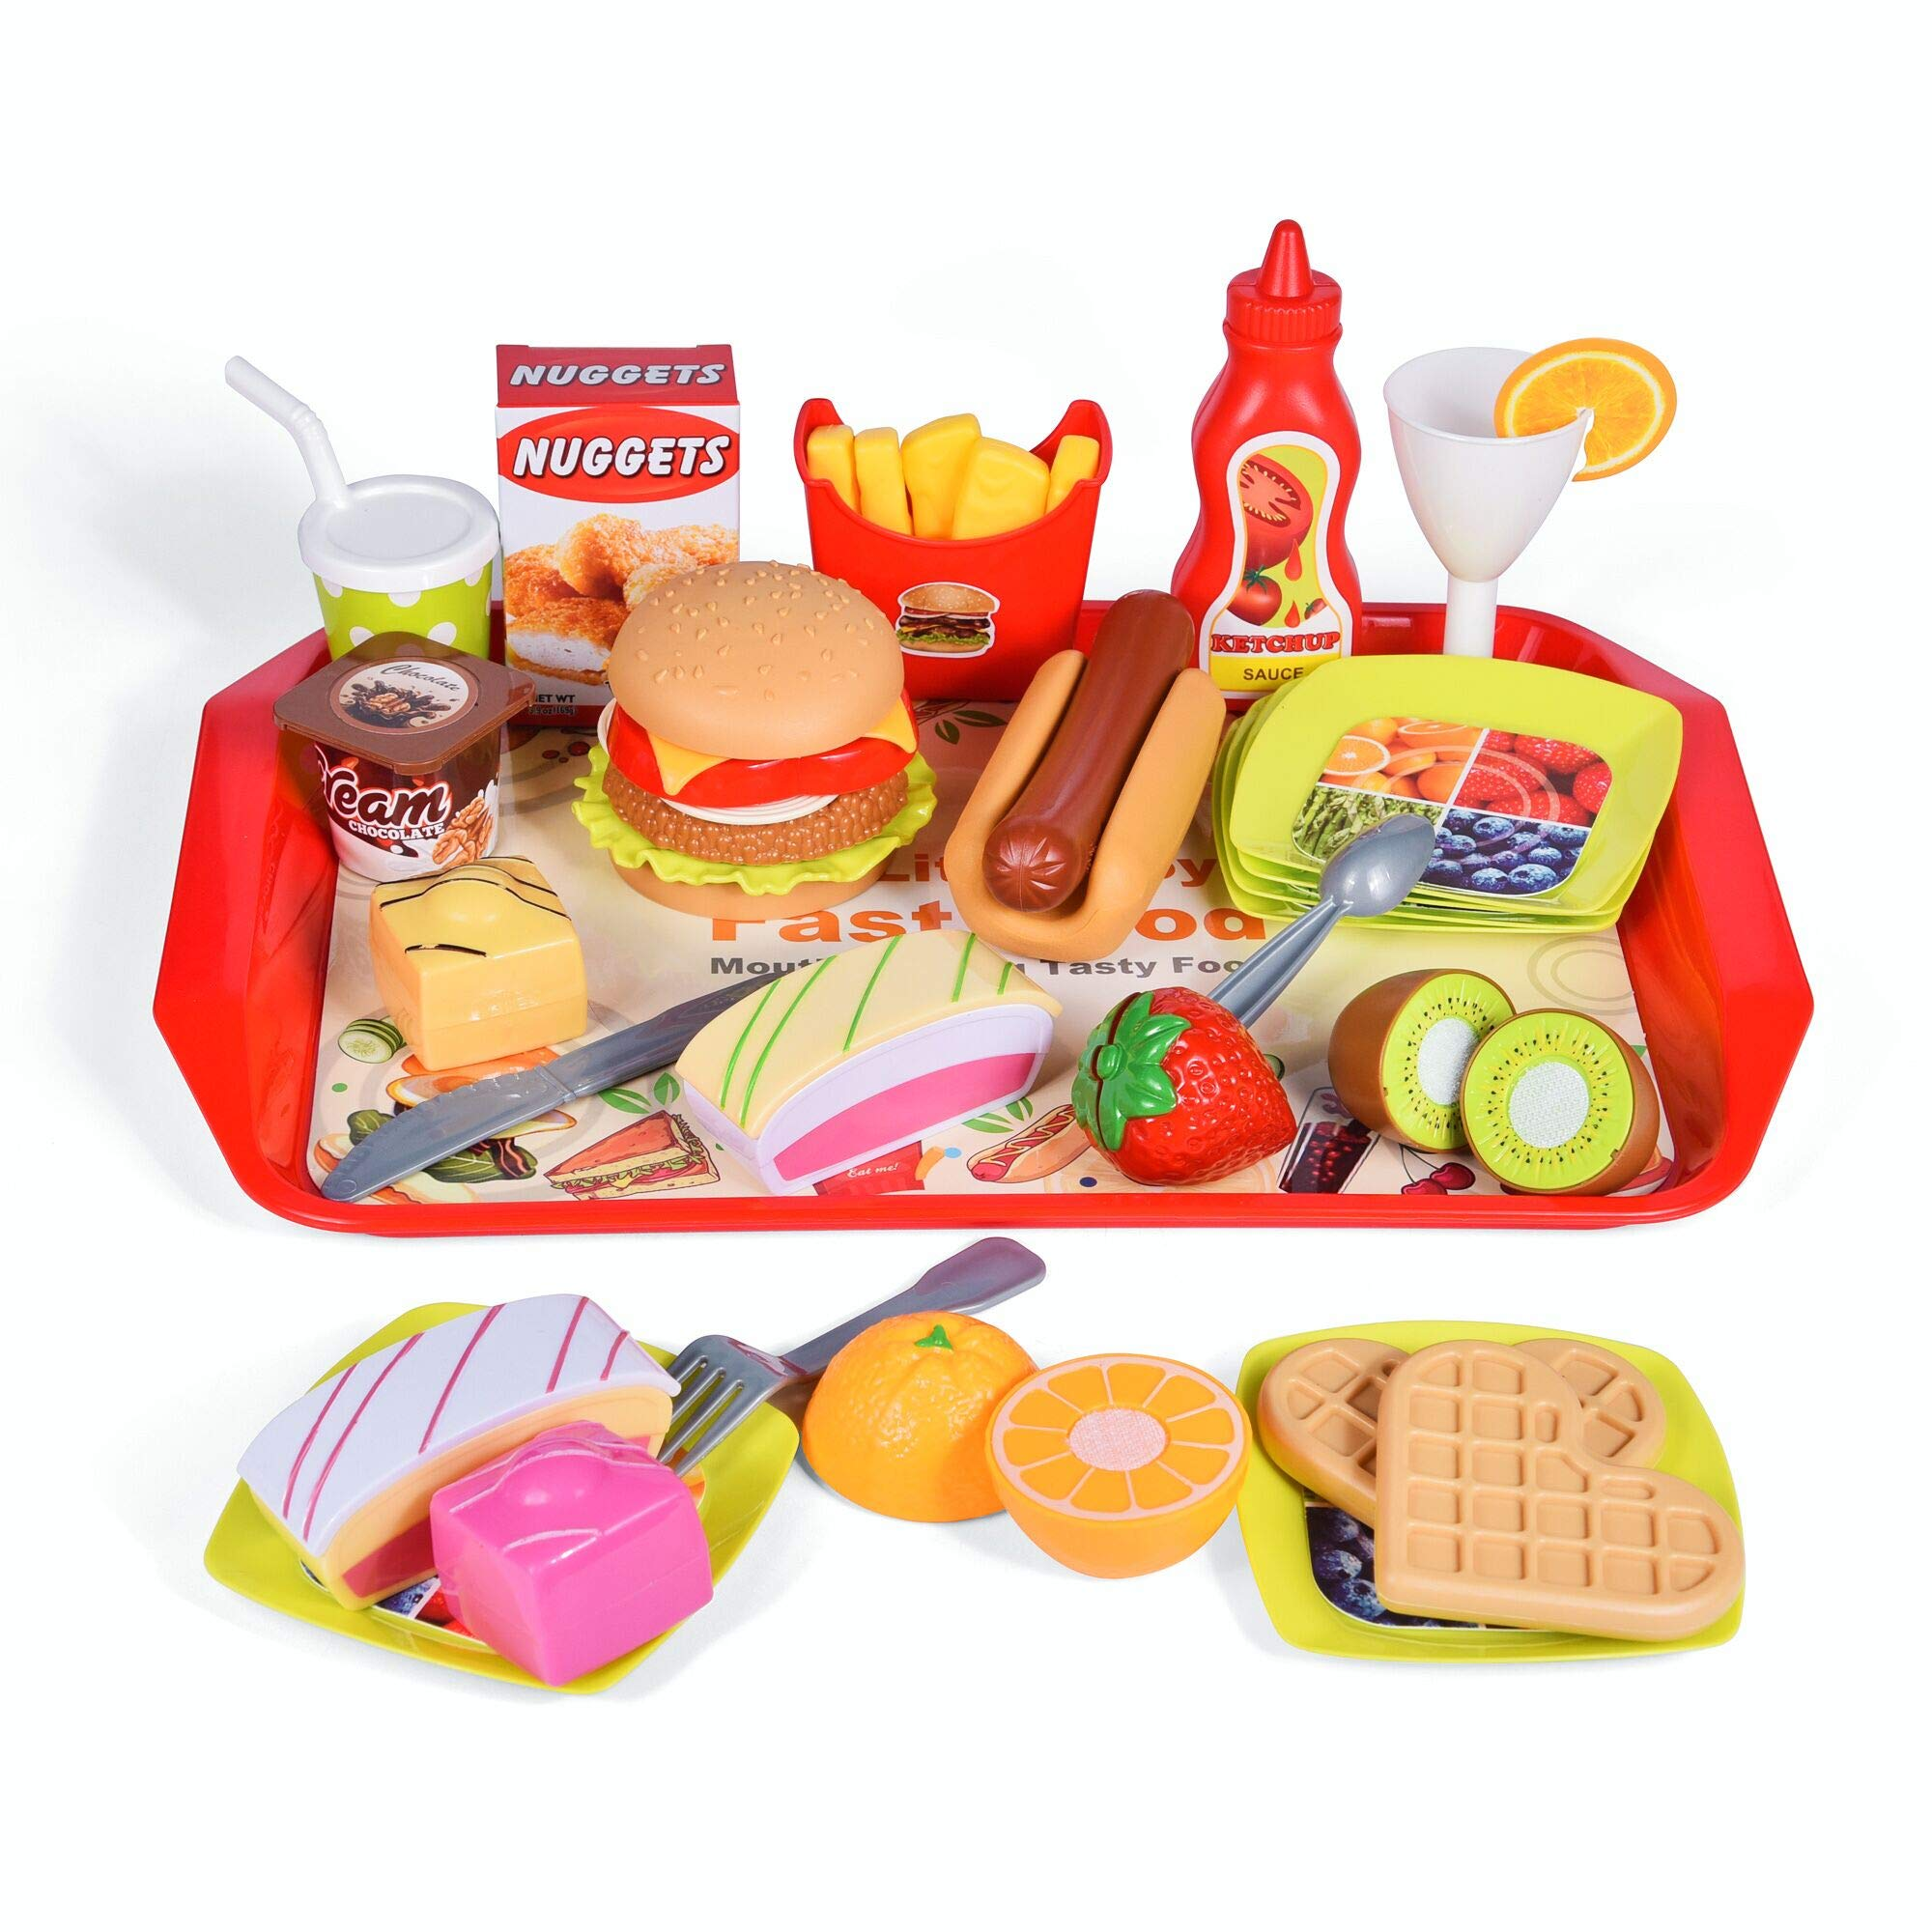 FUN LITTLE TOYS 40 PCs Play Food for Kids Kitchen, Play Kitchen Accessories, Toy Foods with Cutting Fruits and Fast Food for Pretend Play, Kids Birthday Gifts by FUN LITTLE TOYS